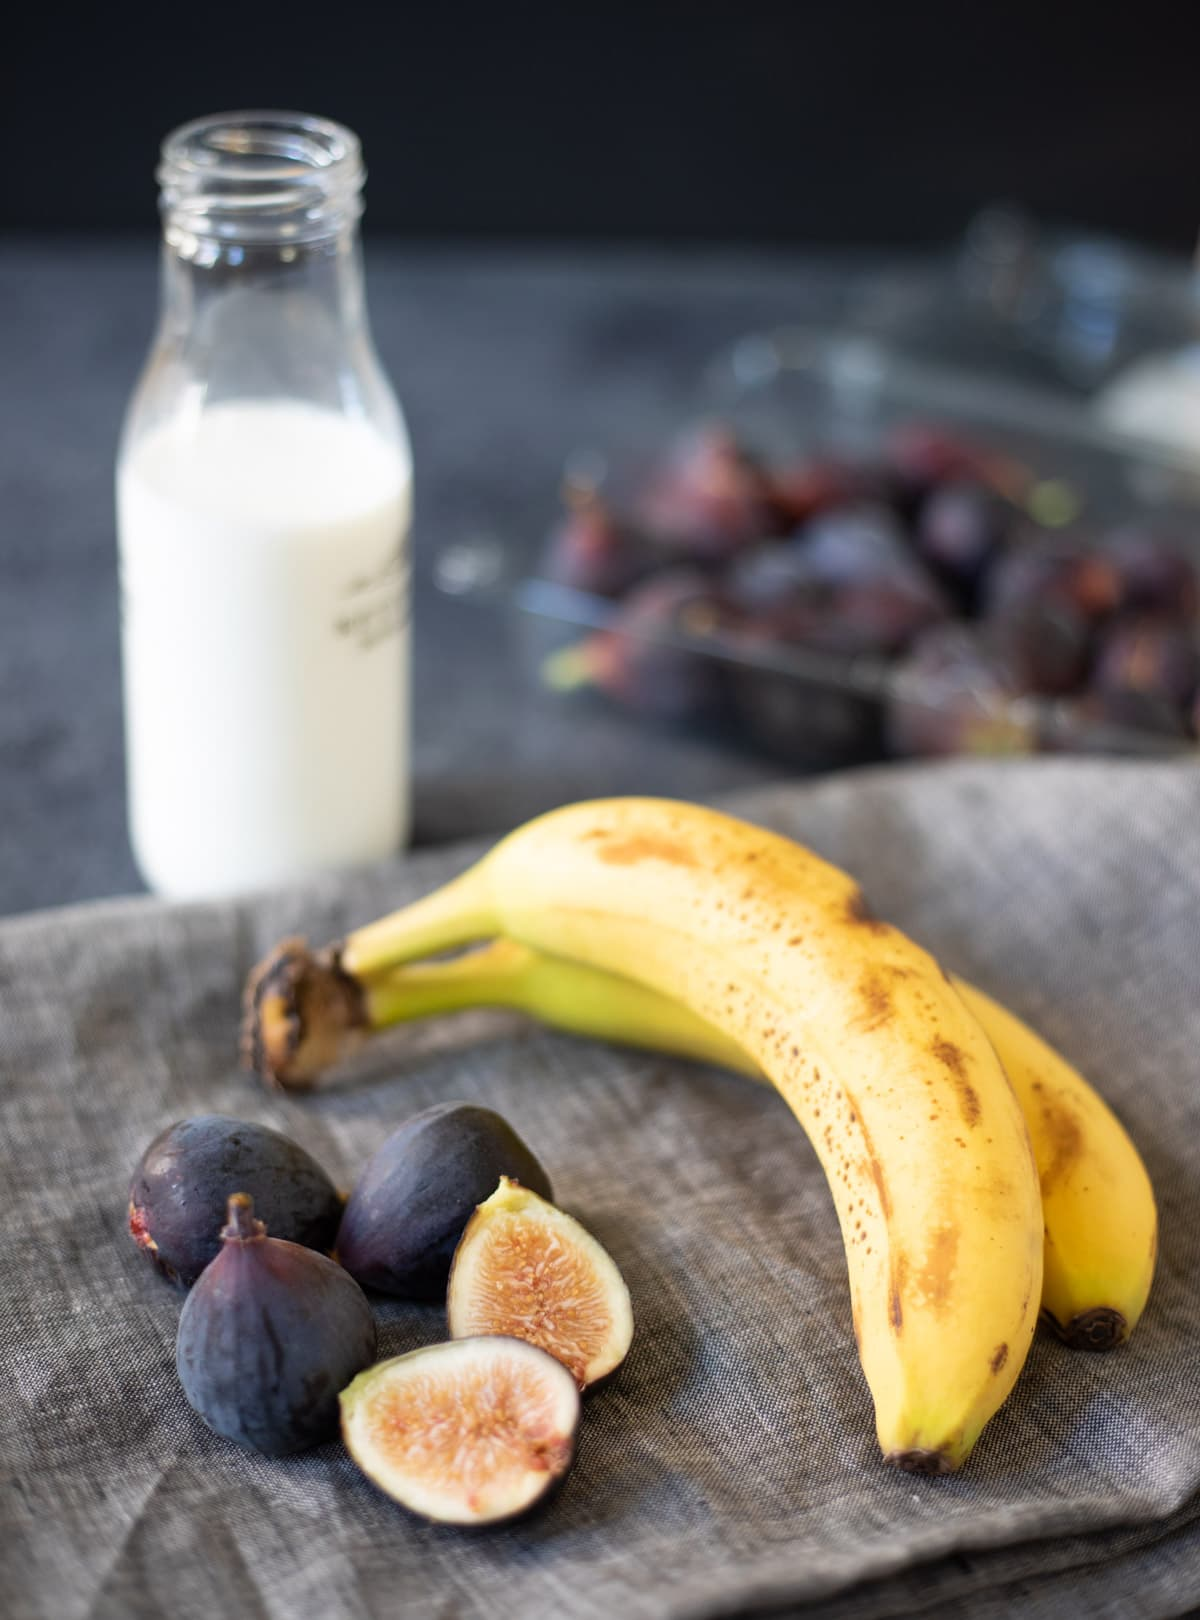 Ingredients such as figs, banana and milk